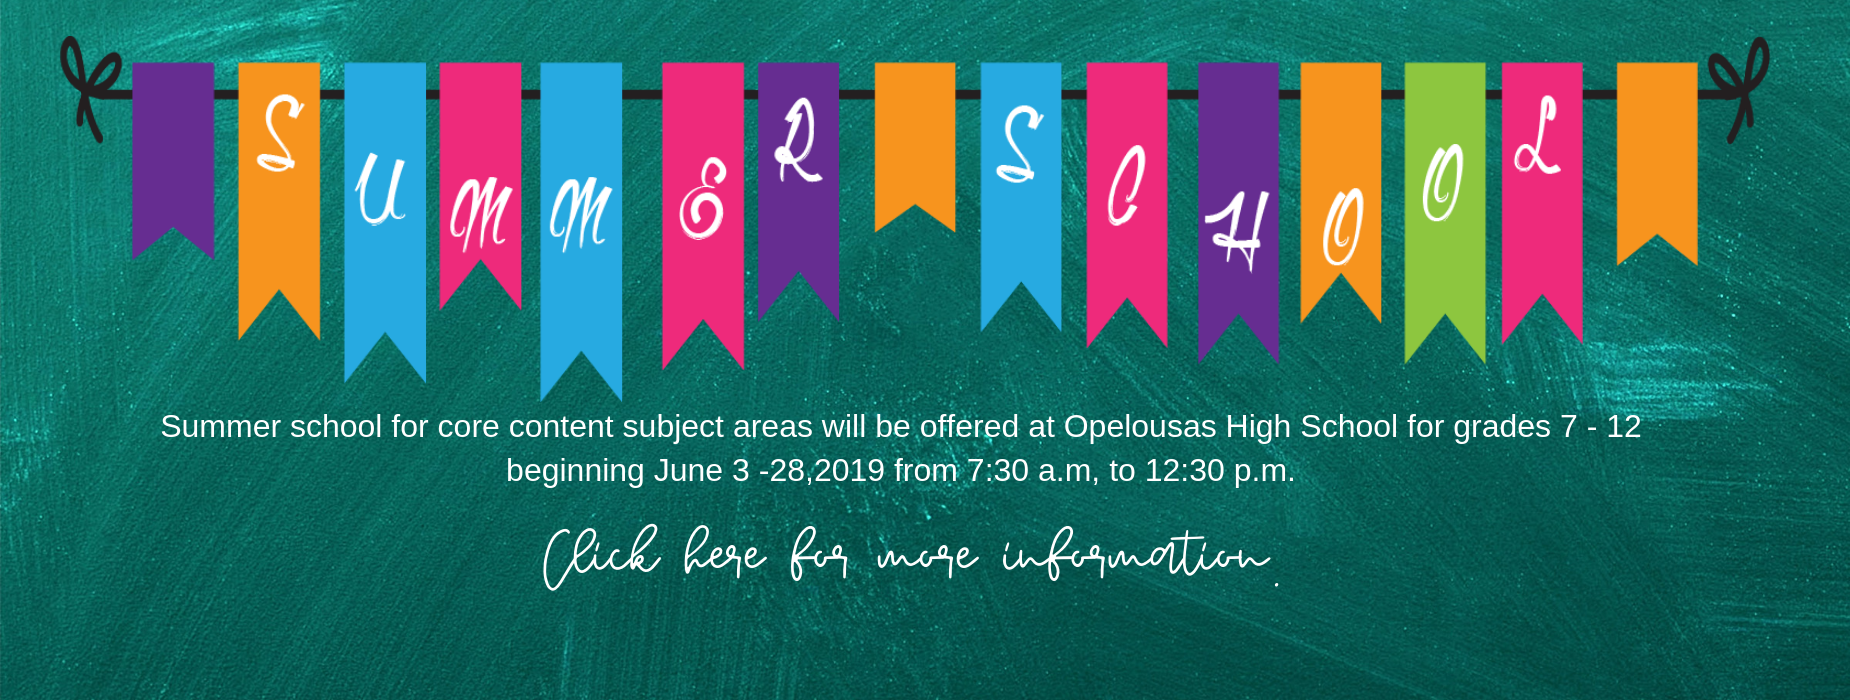 summer schoolSummer school for core content subject areas will be offered at Opelousas High School for grades 7 - 12 beginning June 3 -28,2019 from 7:30 a.m, to 12:30 p.m. click link on image for more information